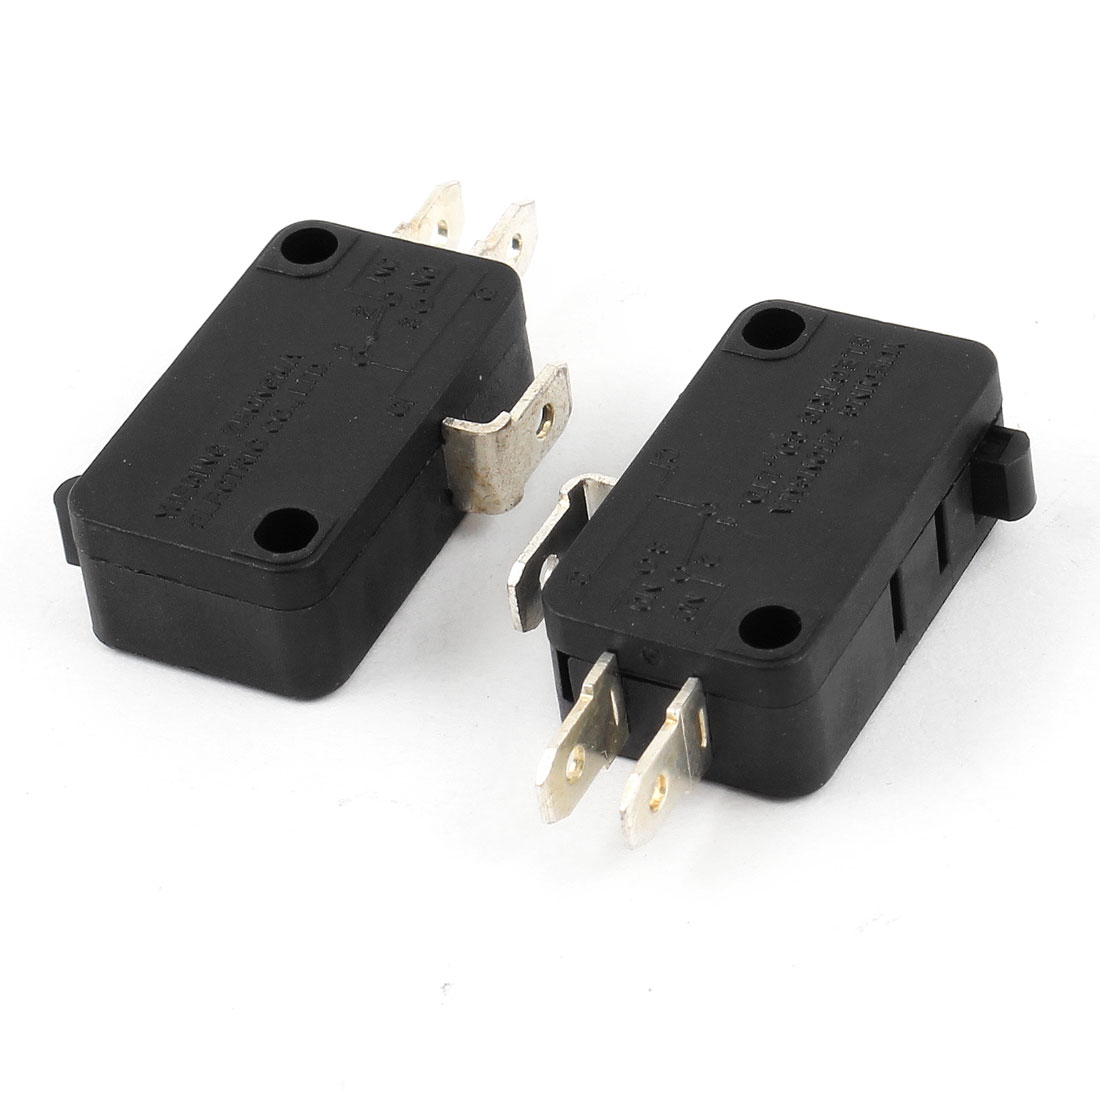 AC 250V/6A 125V/15A Momentary 1NO 1NC SPDT Push Button Micro Switch 3 Pin 2 Pcs